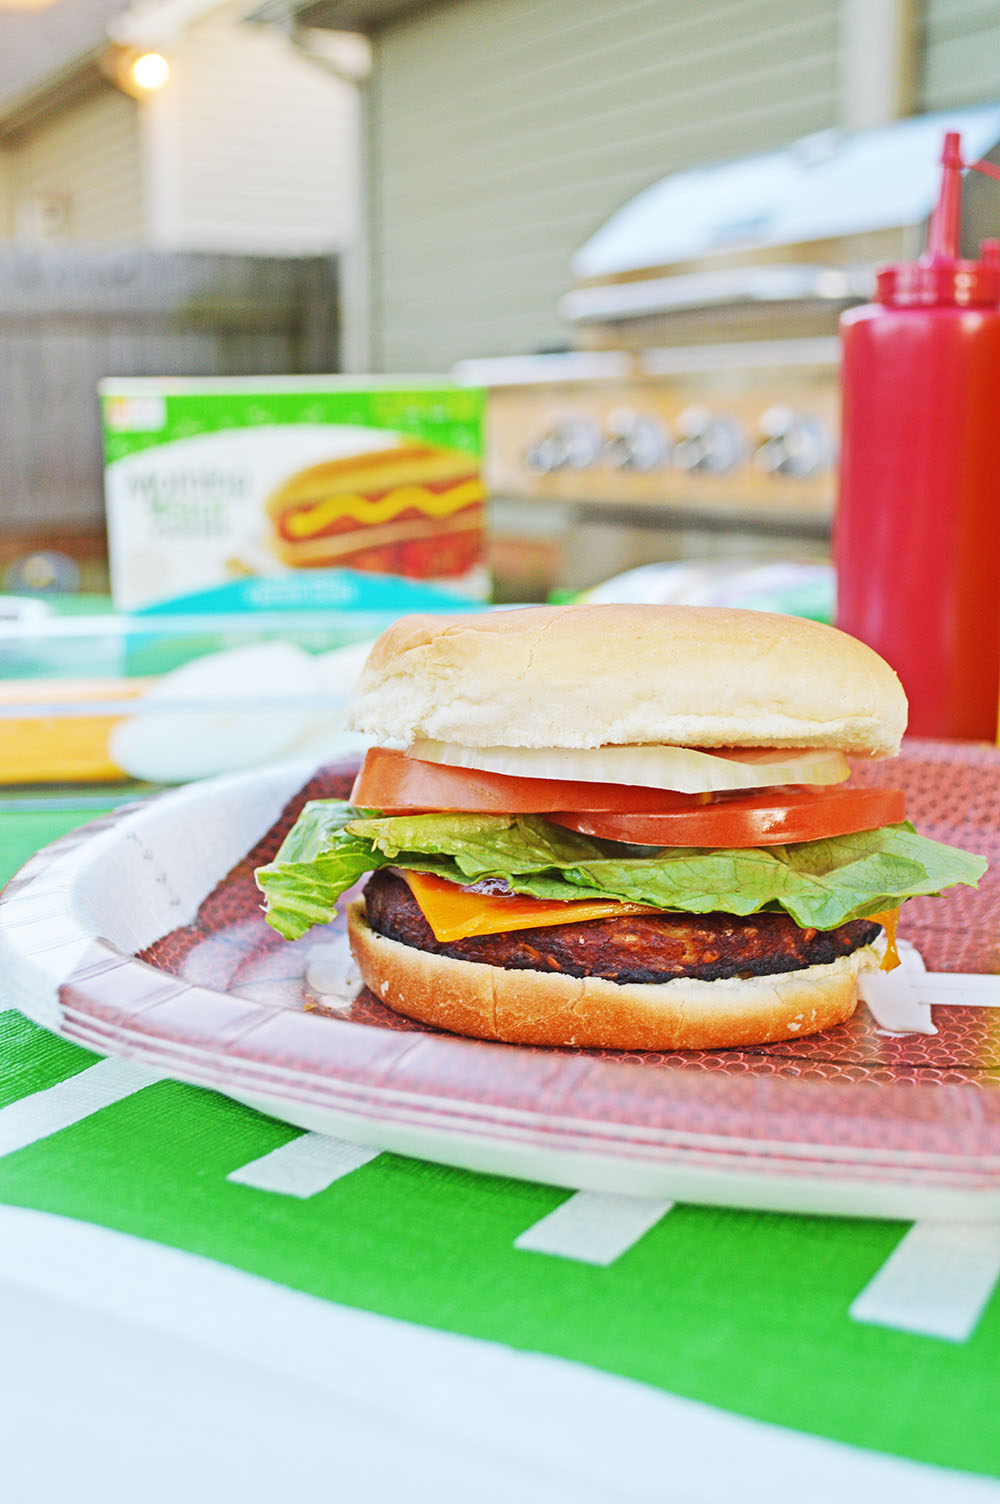 BBQ Veggie Burgers + A Burger Spread for Tailgating at Home